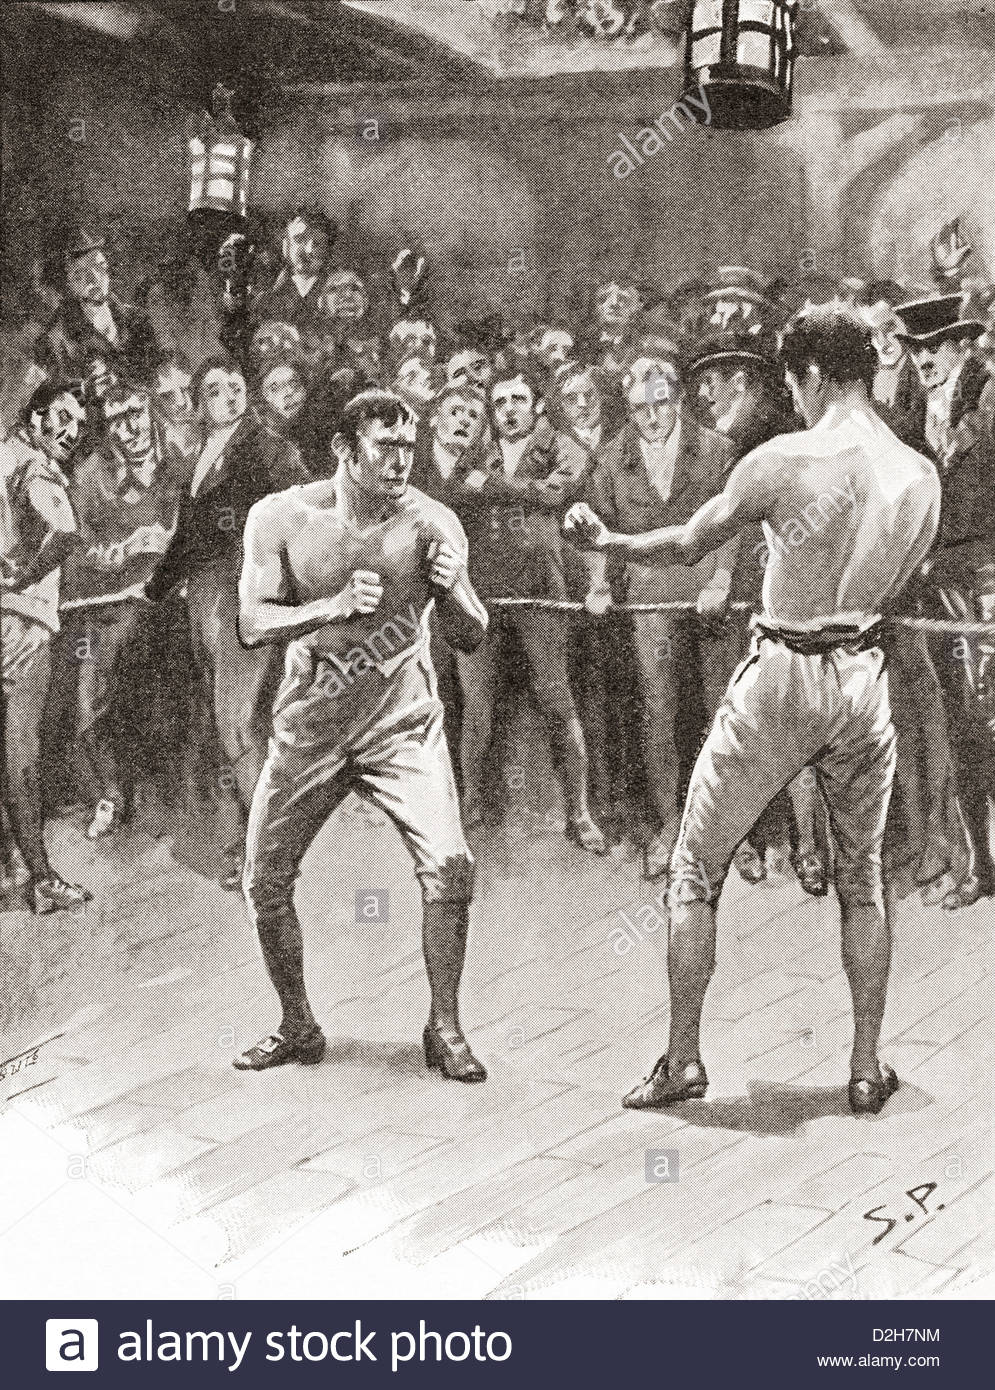 bare-knuckle-boxing-in-the-19th-century-aka-bare-knuckle-prizefighting-D2H7NM.jpg